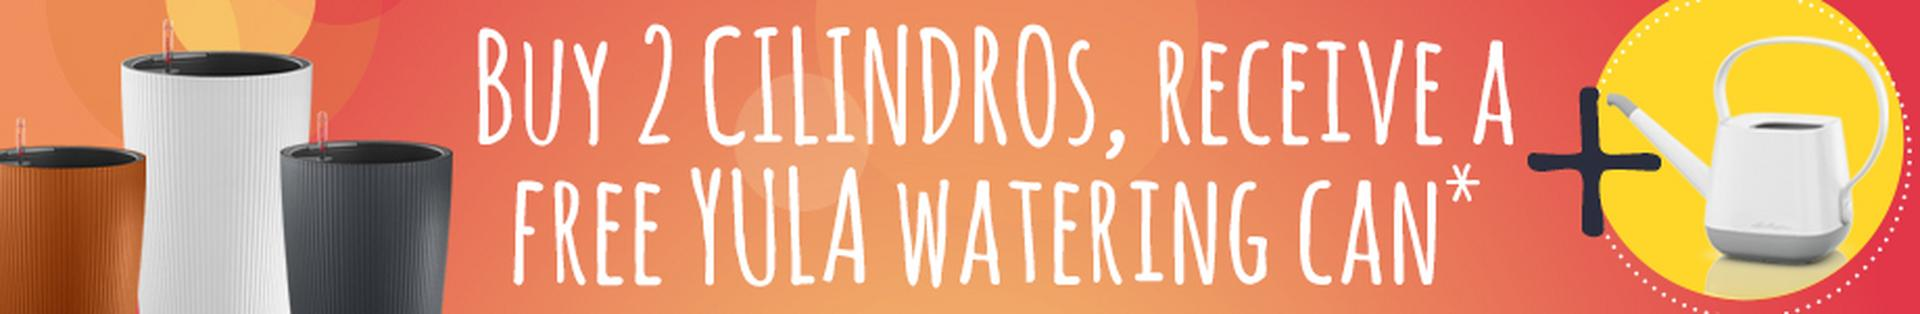 le_listing_banner_cilindro_07-2019_xs_us